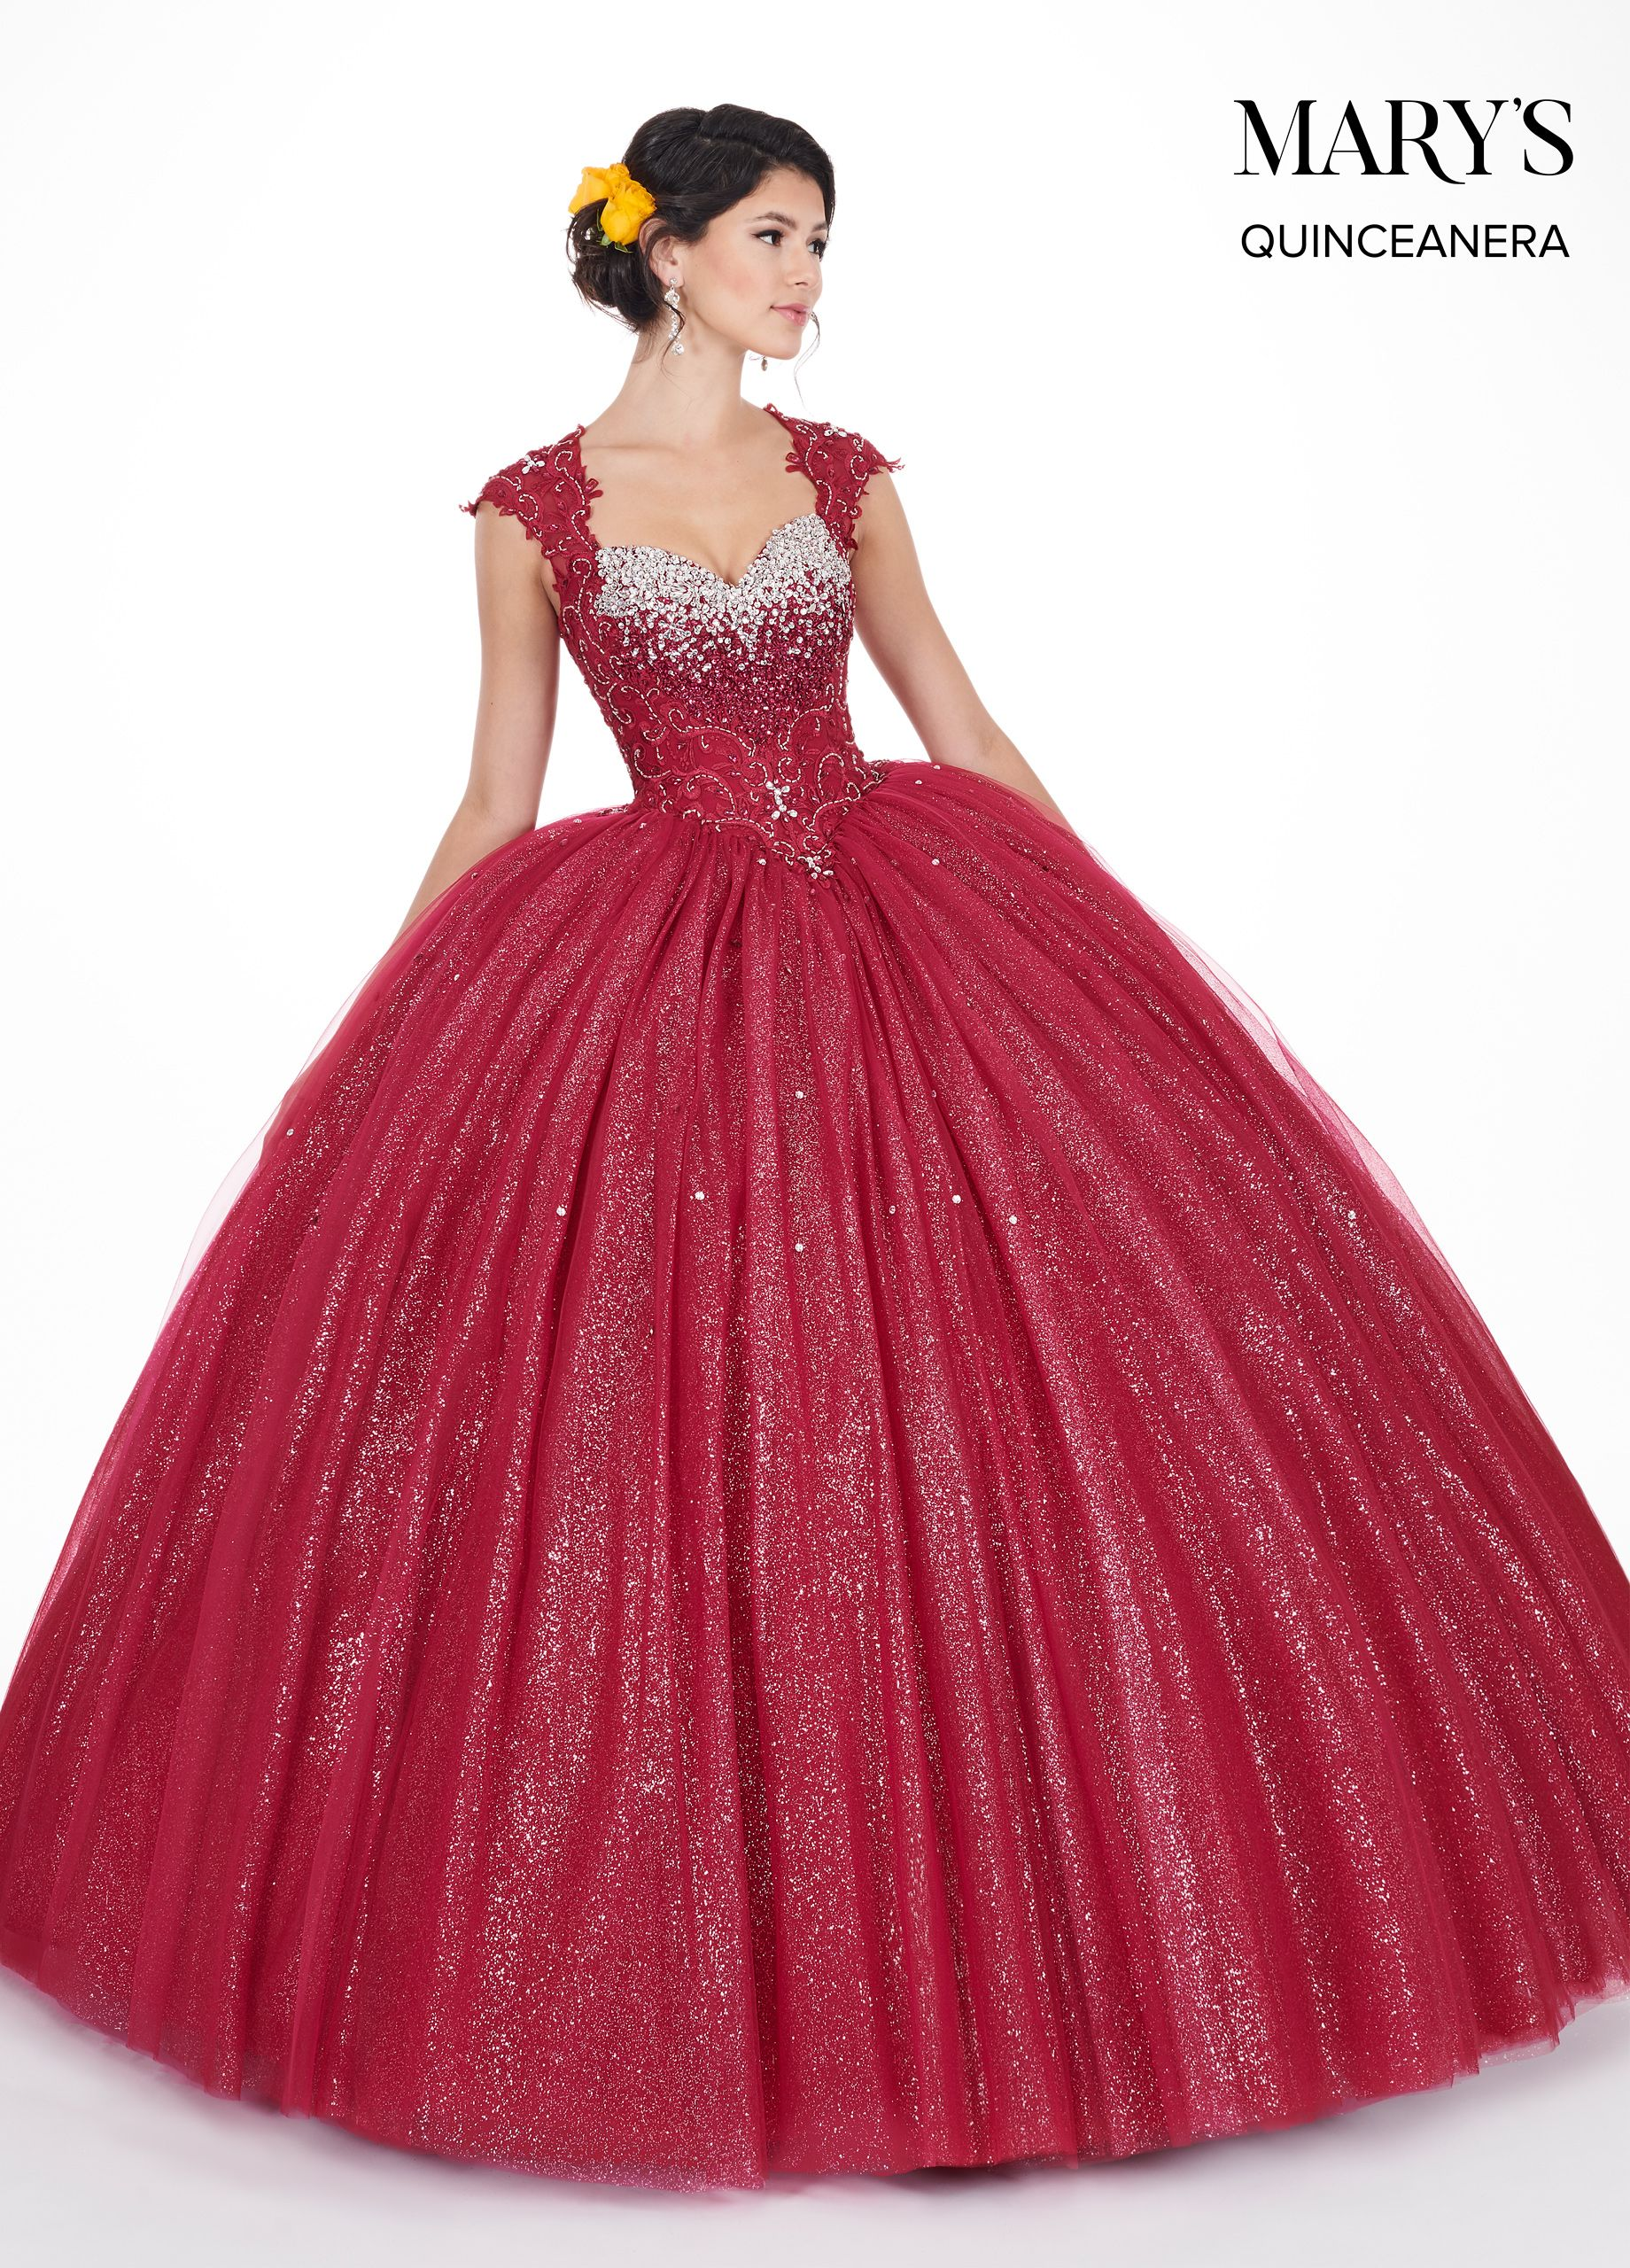 2c8f3455996 Dramatic glitter tulle gown with an embroidery applique bodice ...